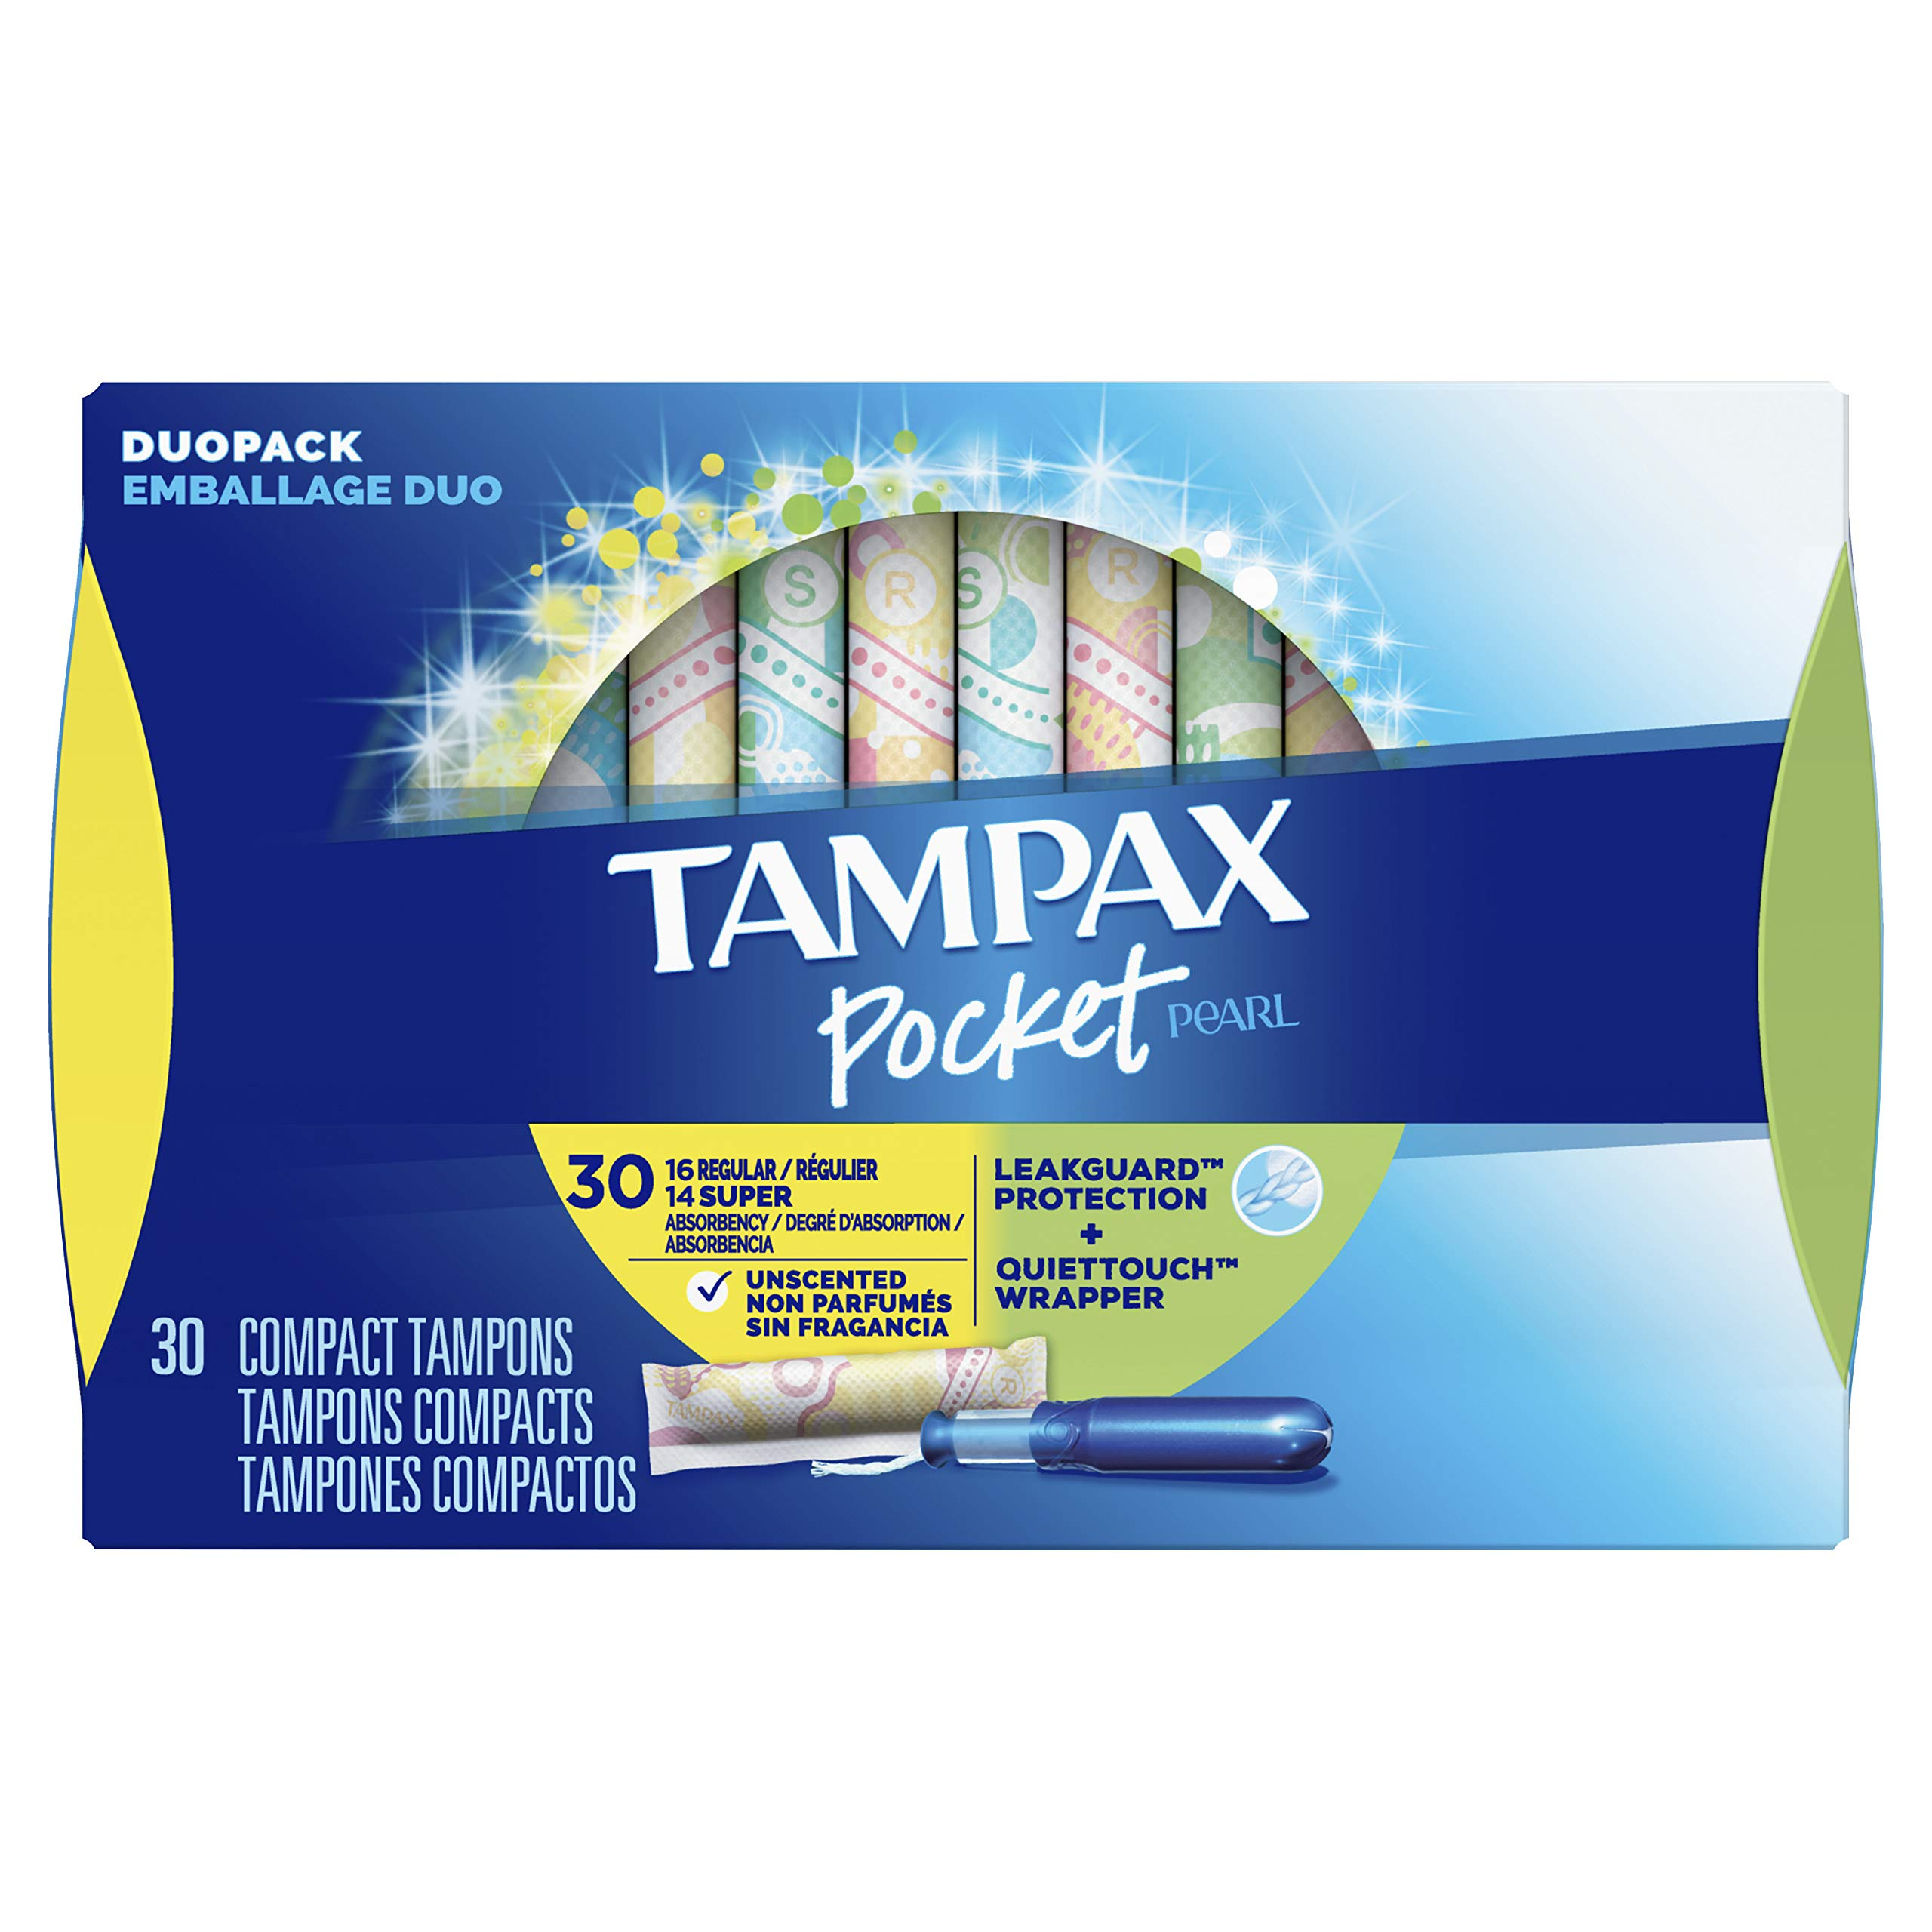 TAMPAX Pocket Pearl, Duopack (Regular/Super), Plastic Tampons, Unscented, 30 Count  (Packaging May Vary)